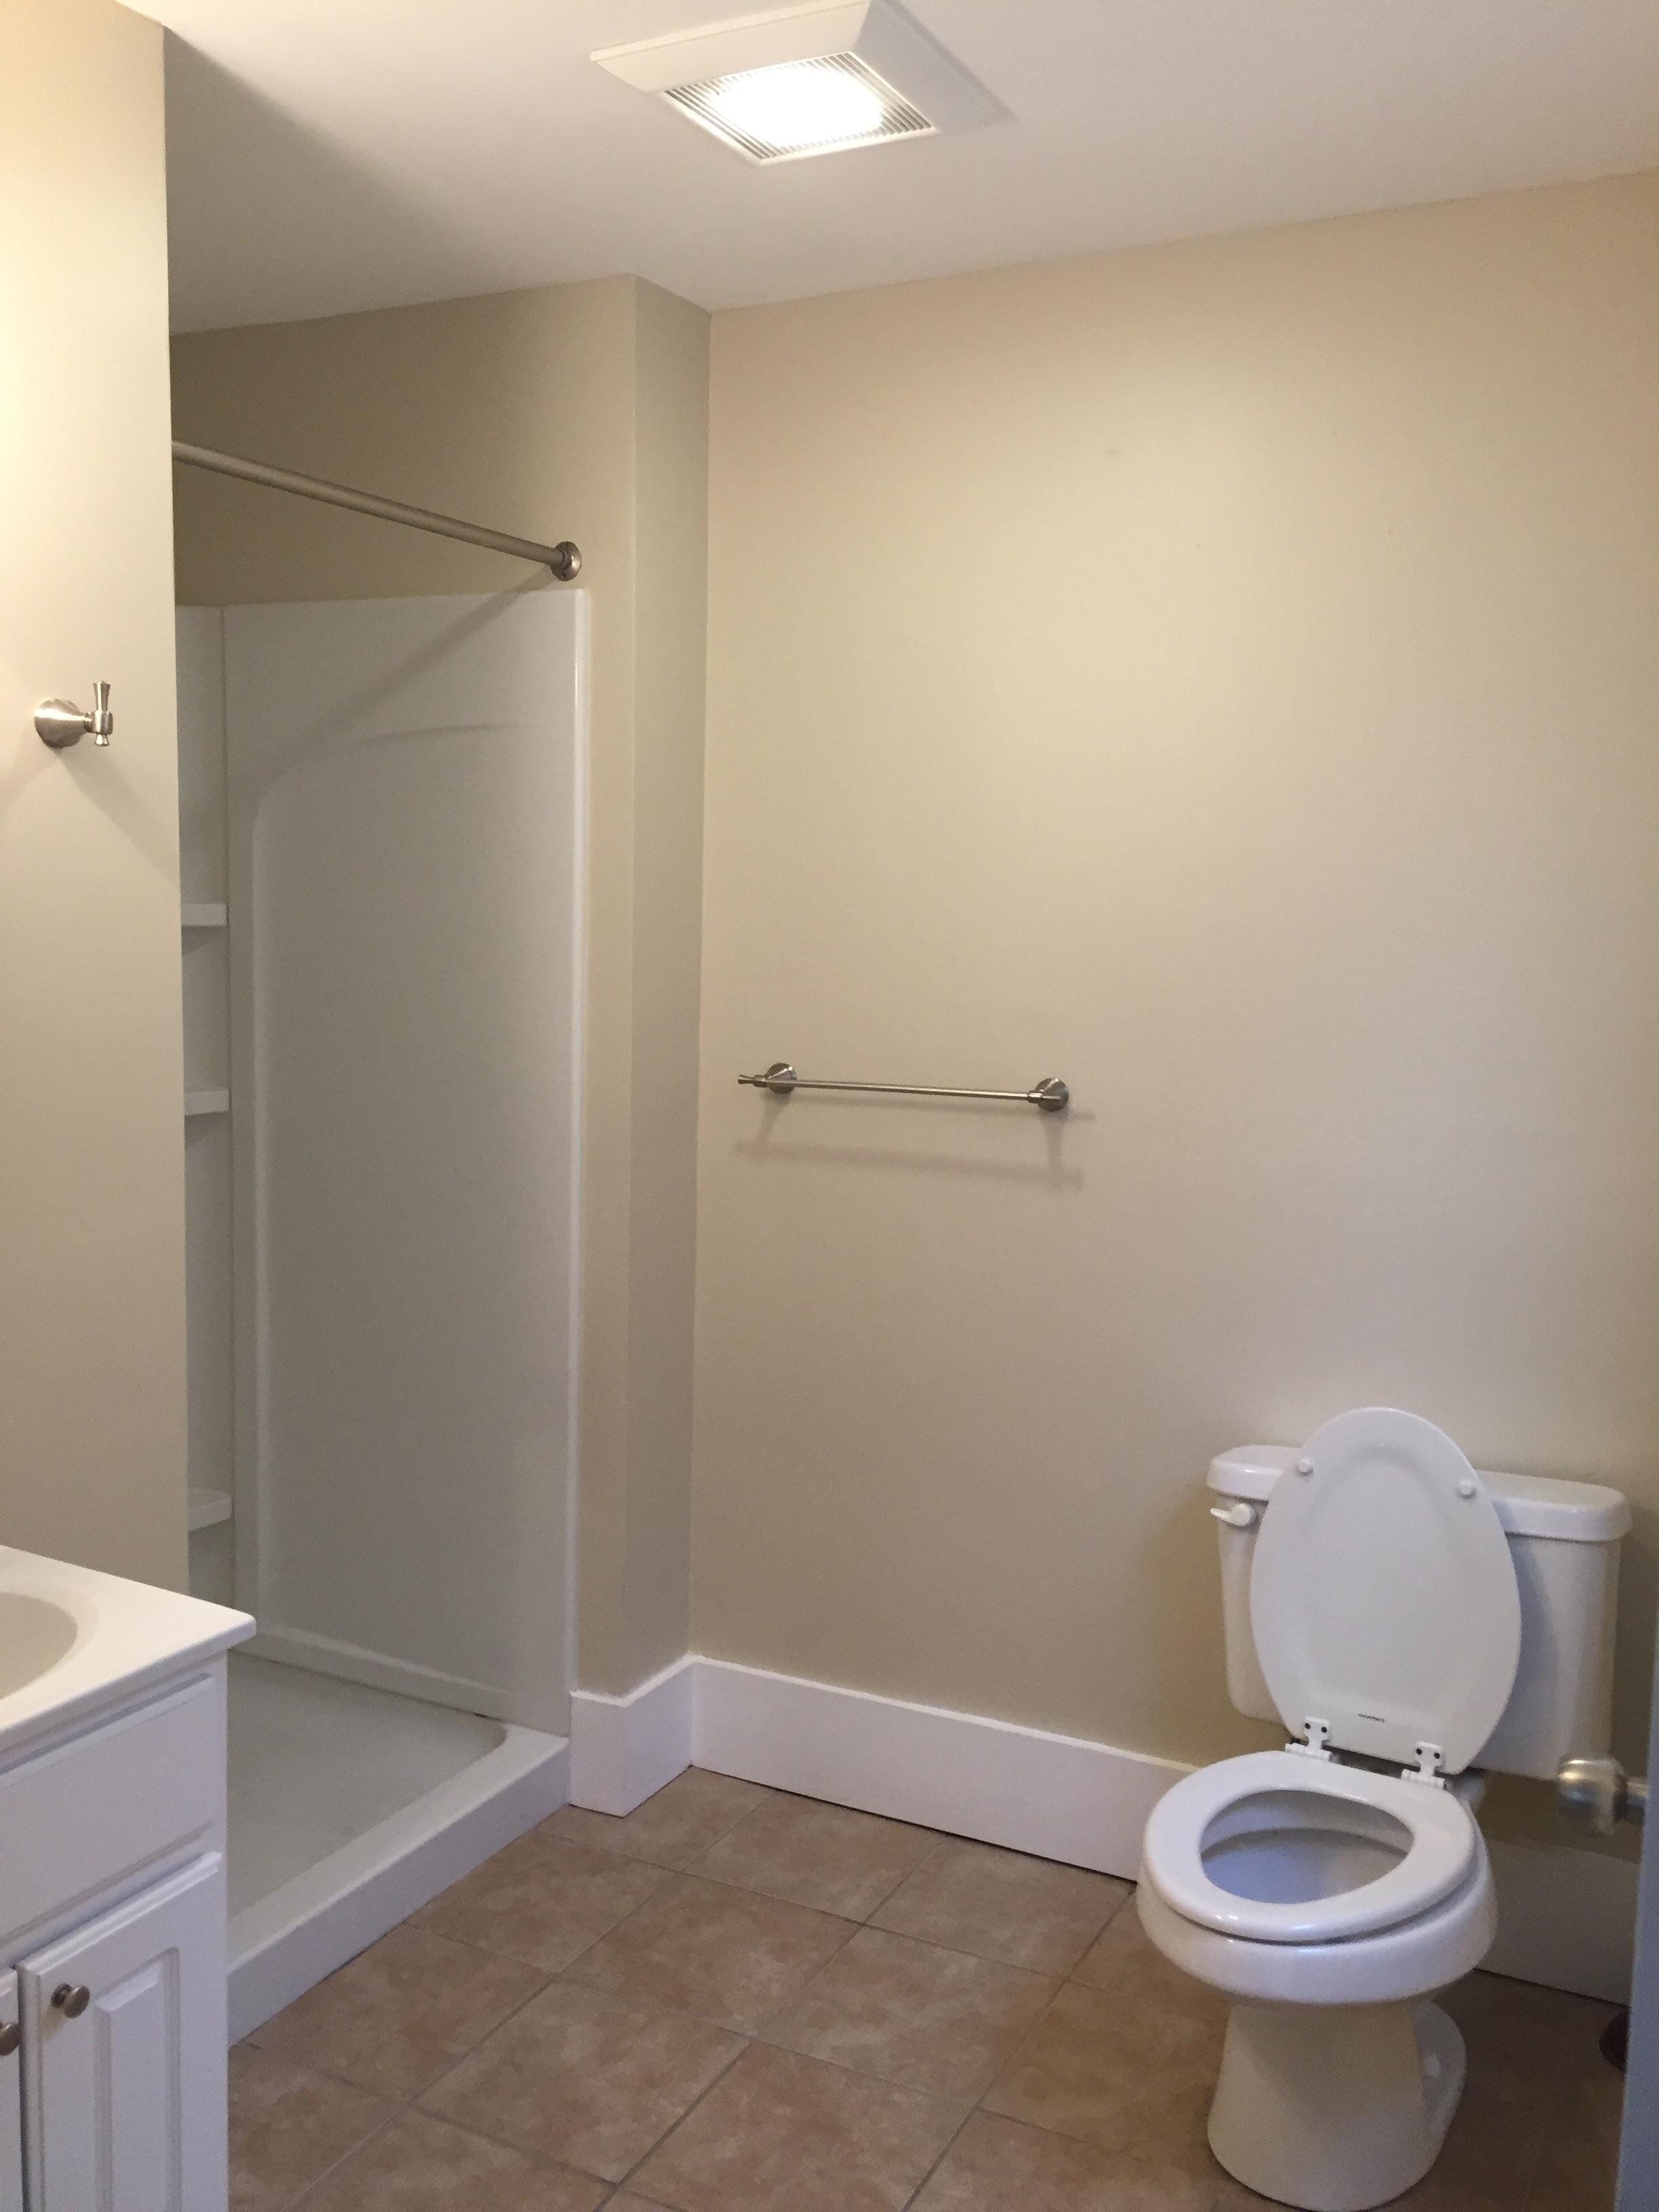 Studio Apartments For Rent In Everett Ma